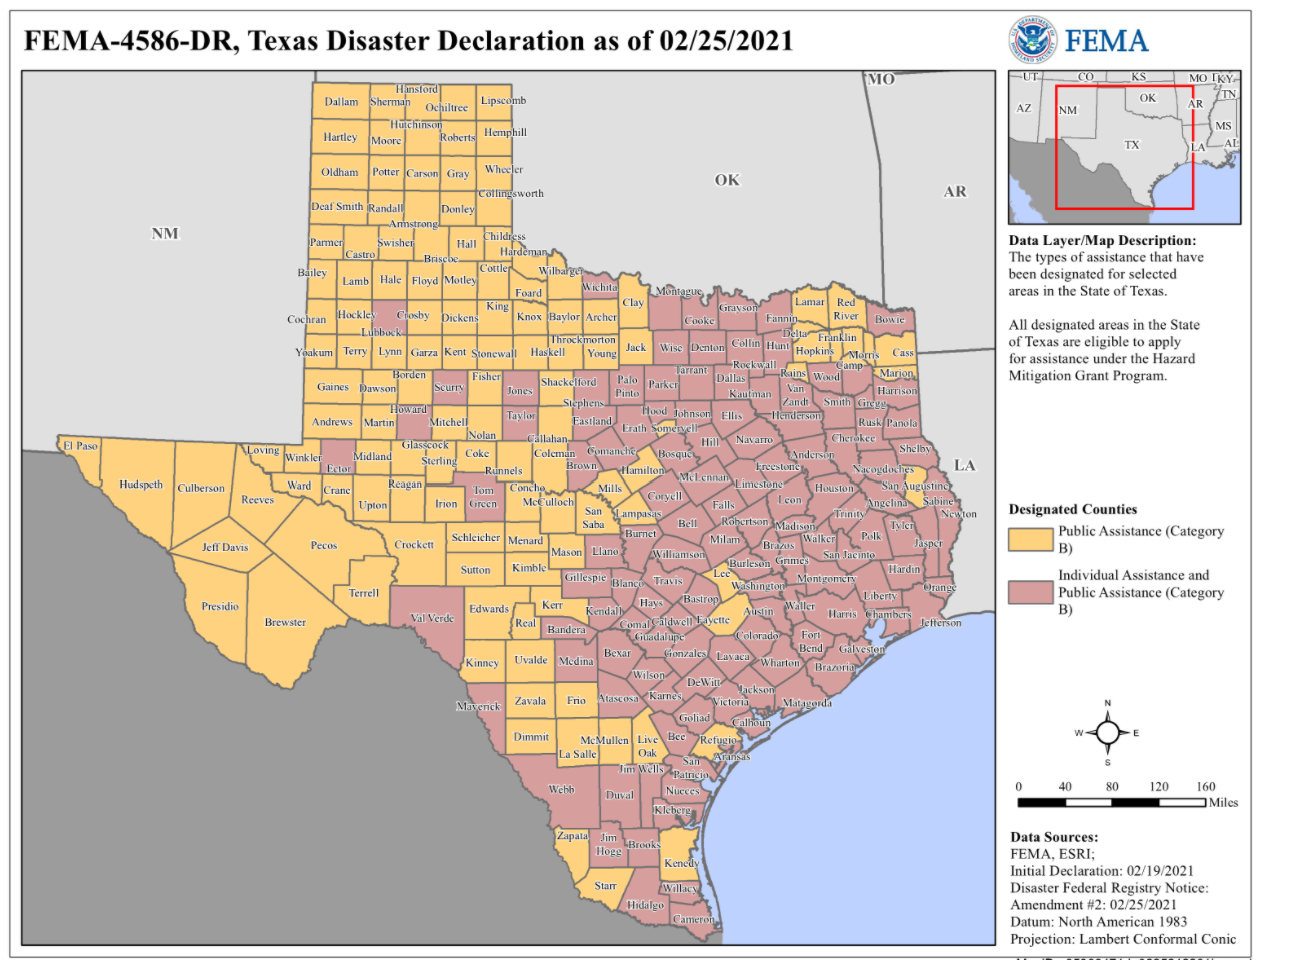 Fema Application Assistance This Week For Those Hit By Texas Winter Freeze Cw39 Houston